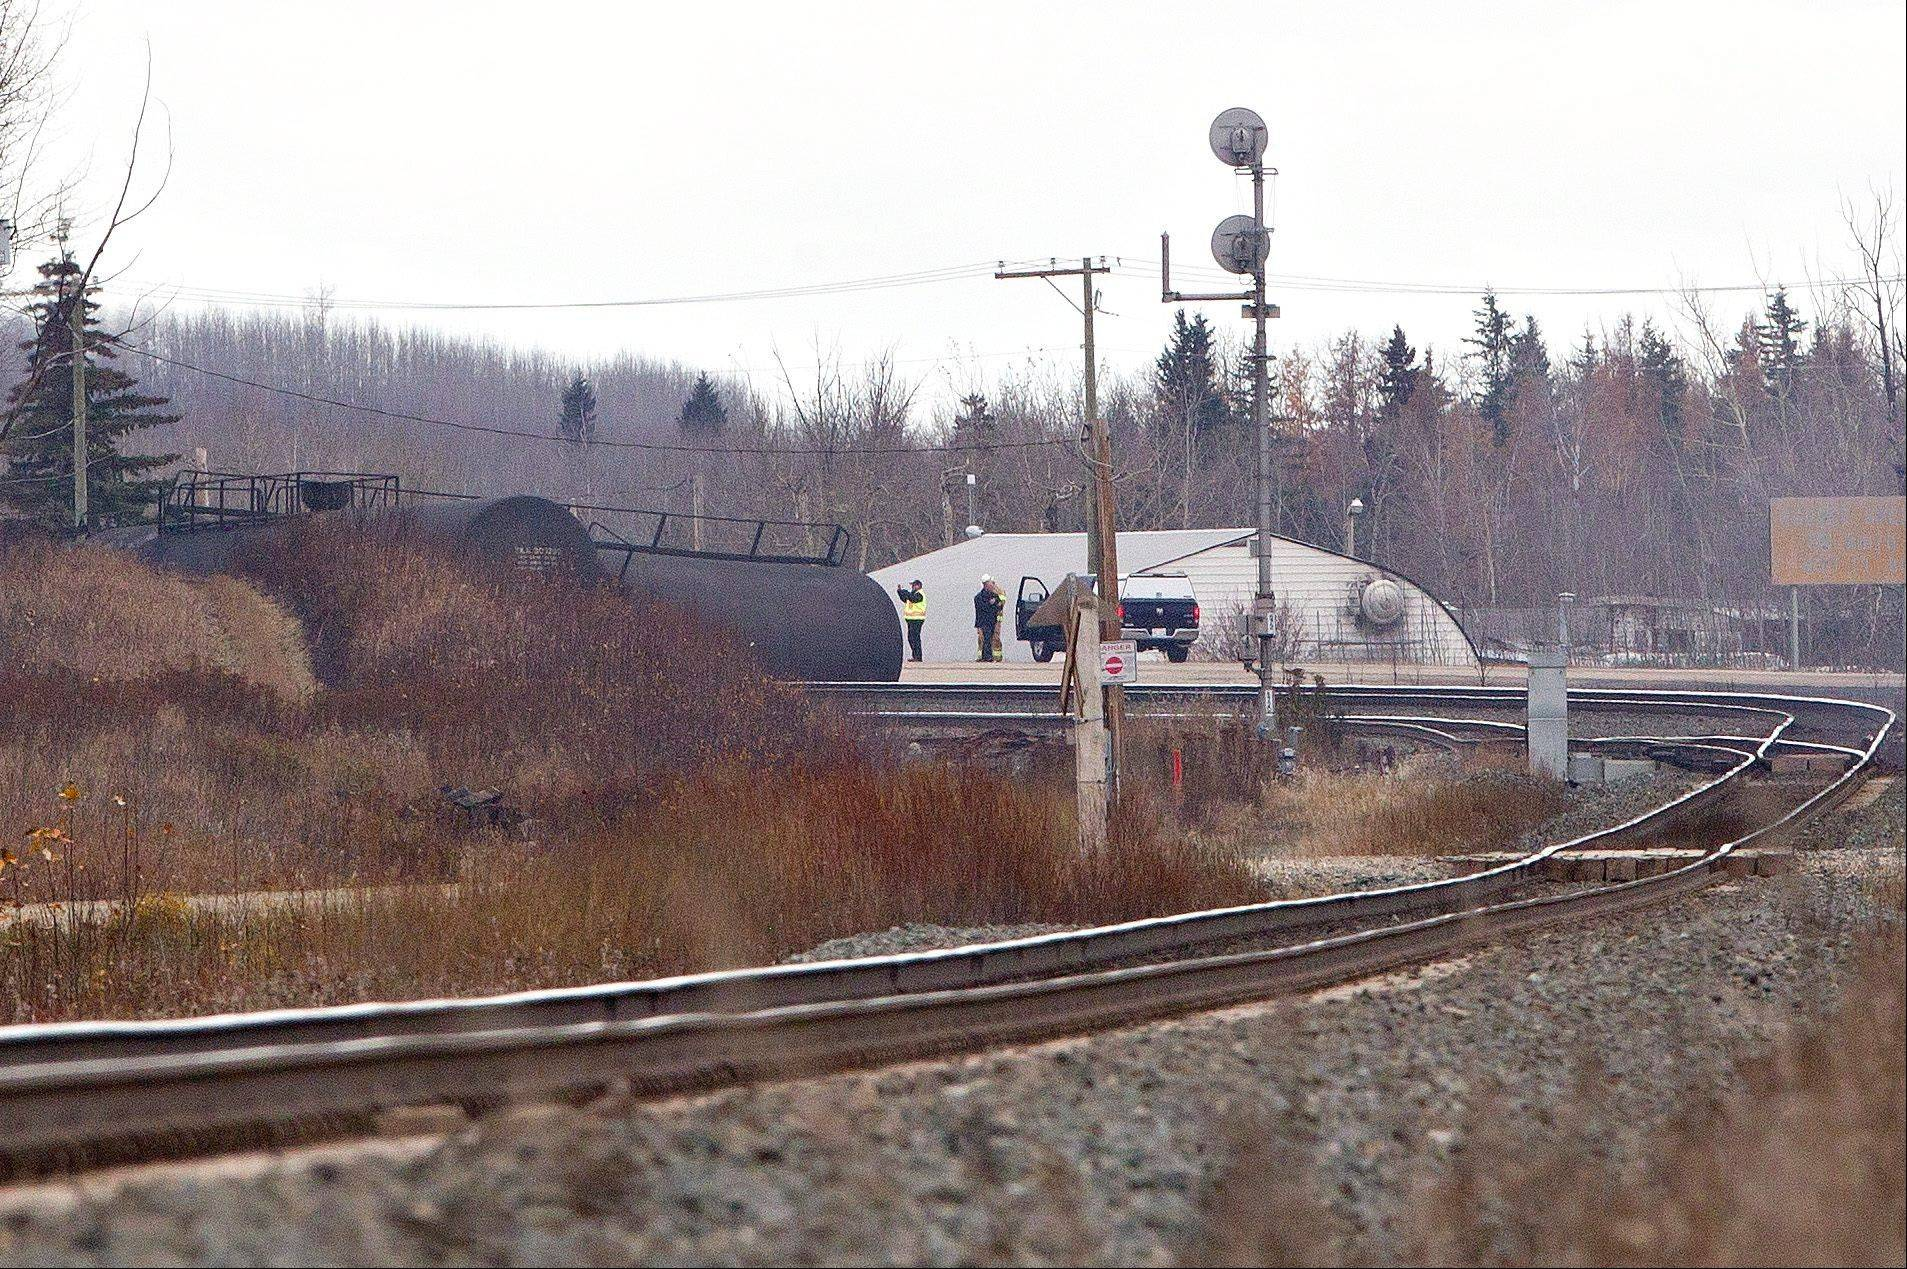 Emergency crews work at the scene of a train derailment near Gainford, Alberta, Canada, on Saturday. Canadian National spokesman Louis-Antoine Paquin said 13 cars — four carrying petroleum crude oil and nine loaded with liquefied petroleum gas — came off the tracks around 1 a.m. local time about 50 miles (80 kilometers) from Edmonton. The entire community of roughly 100 people was evacuated.